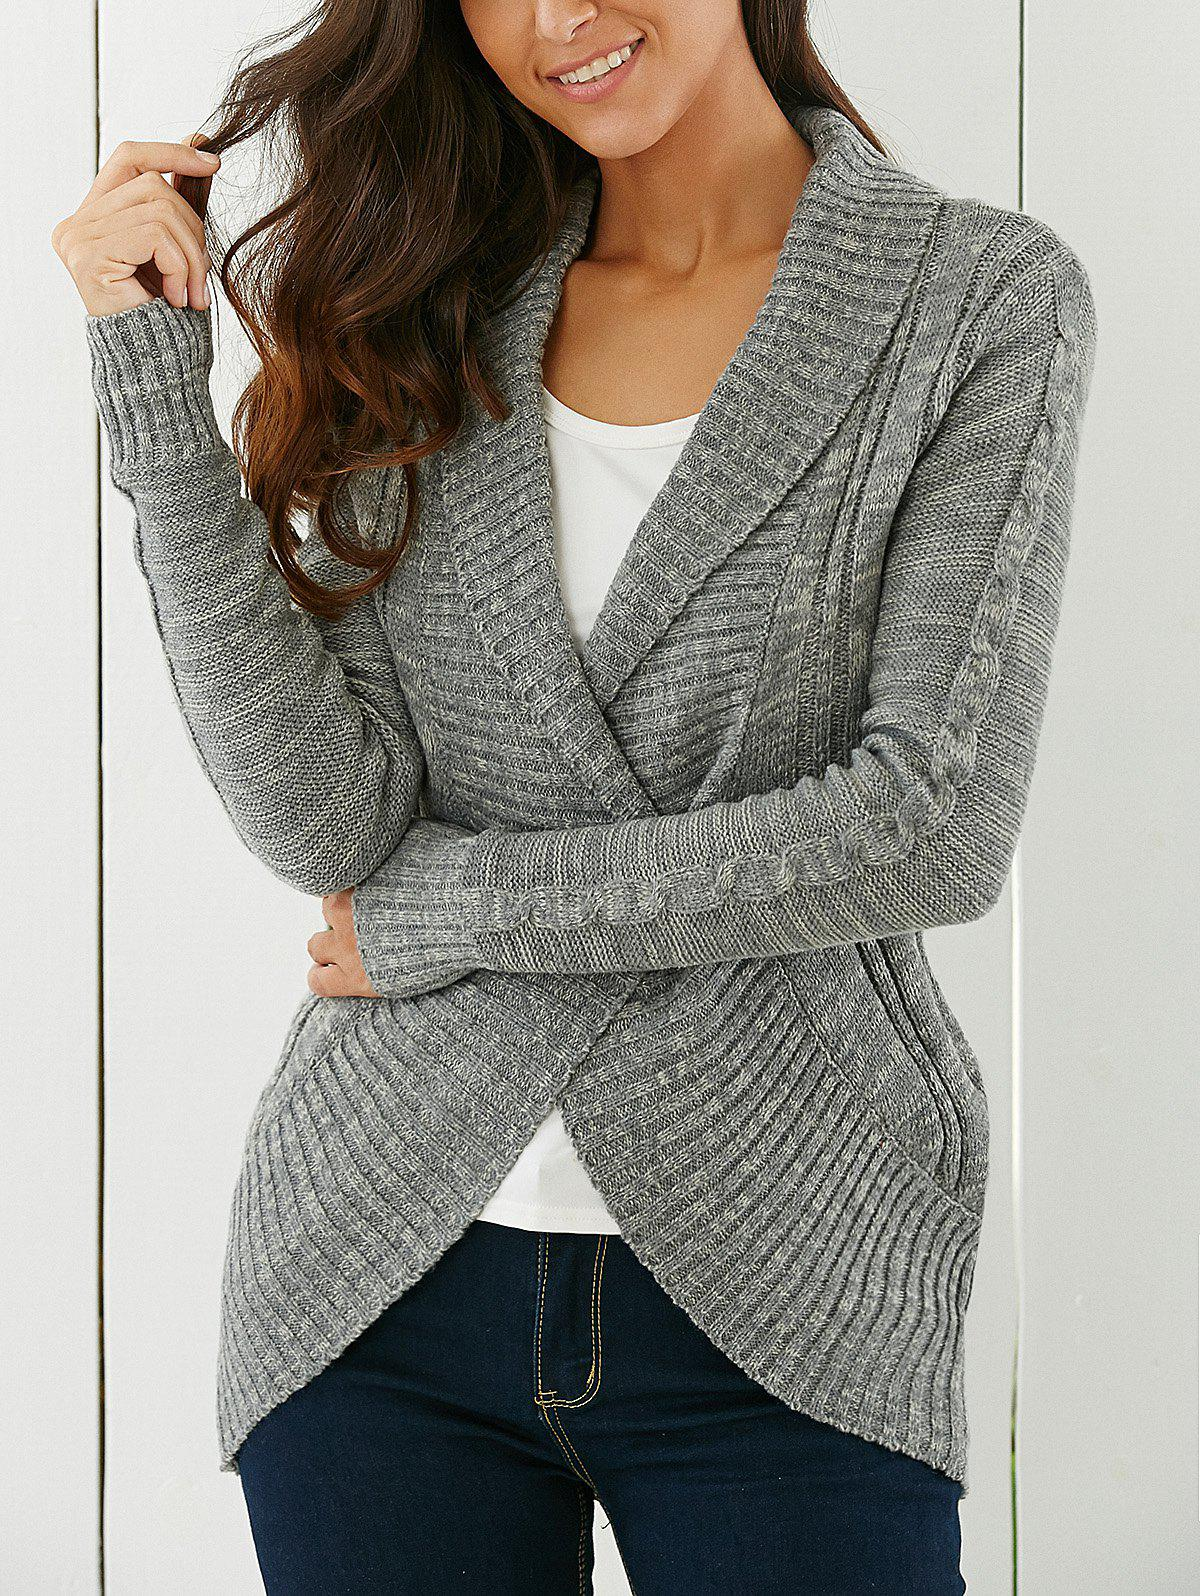 Shawl Collar CardiganWOMEN<br><br>Size: M; Color: GRAY; Type: Cardigans; Material: Acrylic; Sleeve Length: Full; Collar: Shawl Collar; Style: Fashion; Pattern Type: Solid; Season: Fall,Winter; Weight: 0.430kg; Package Contents: 1 x Cardigan;